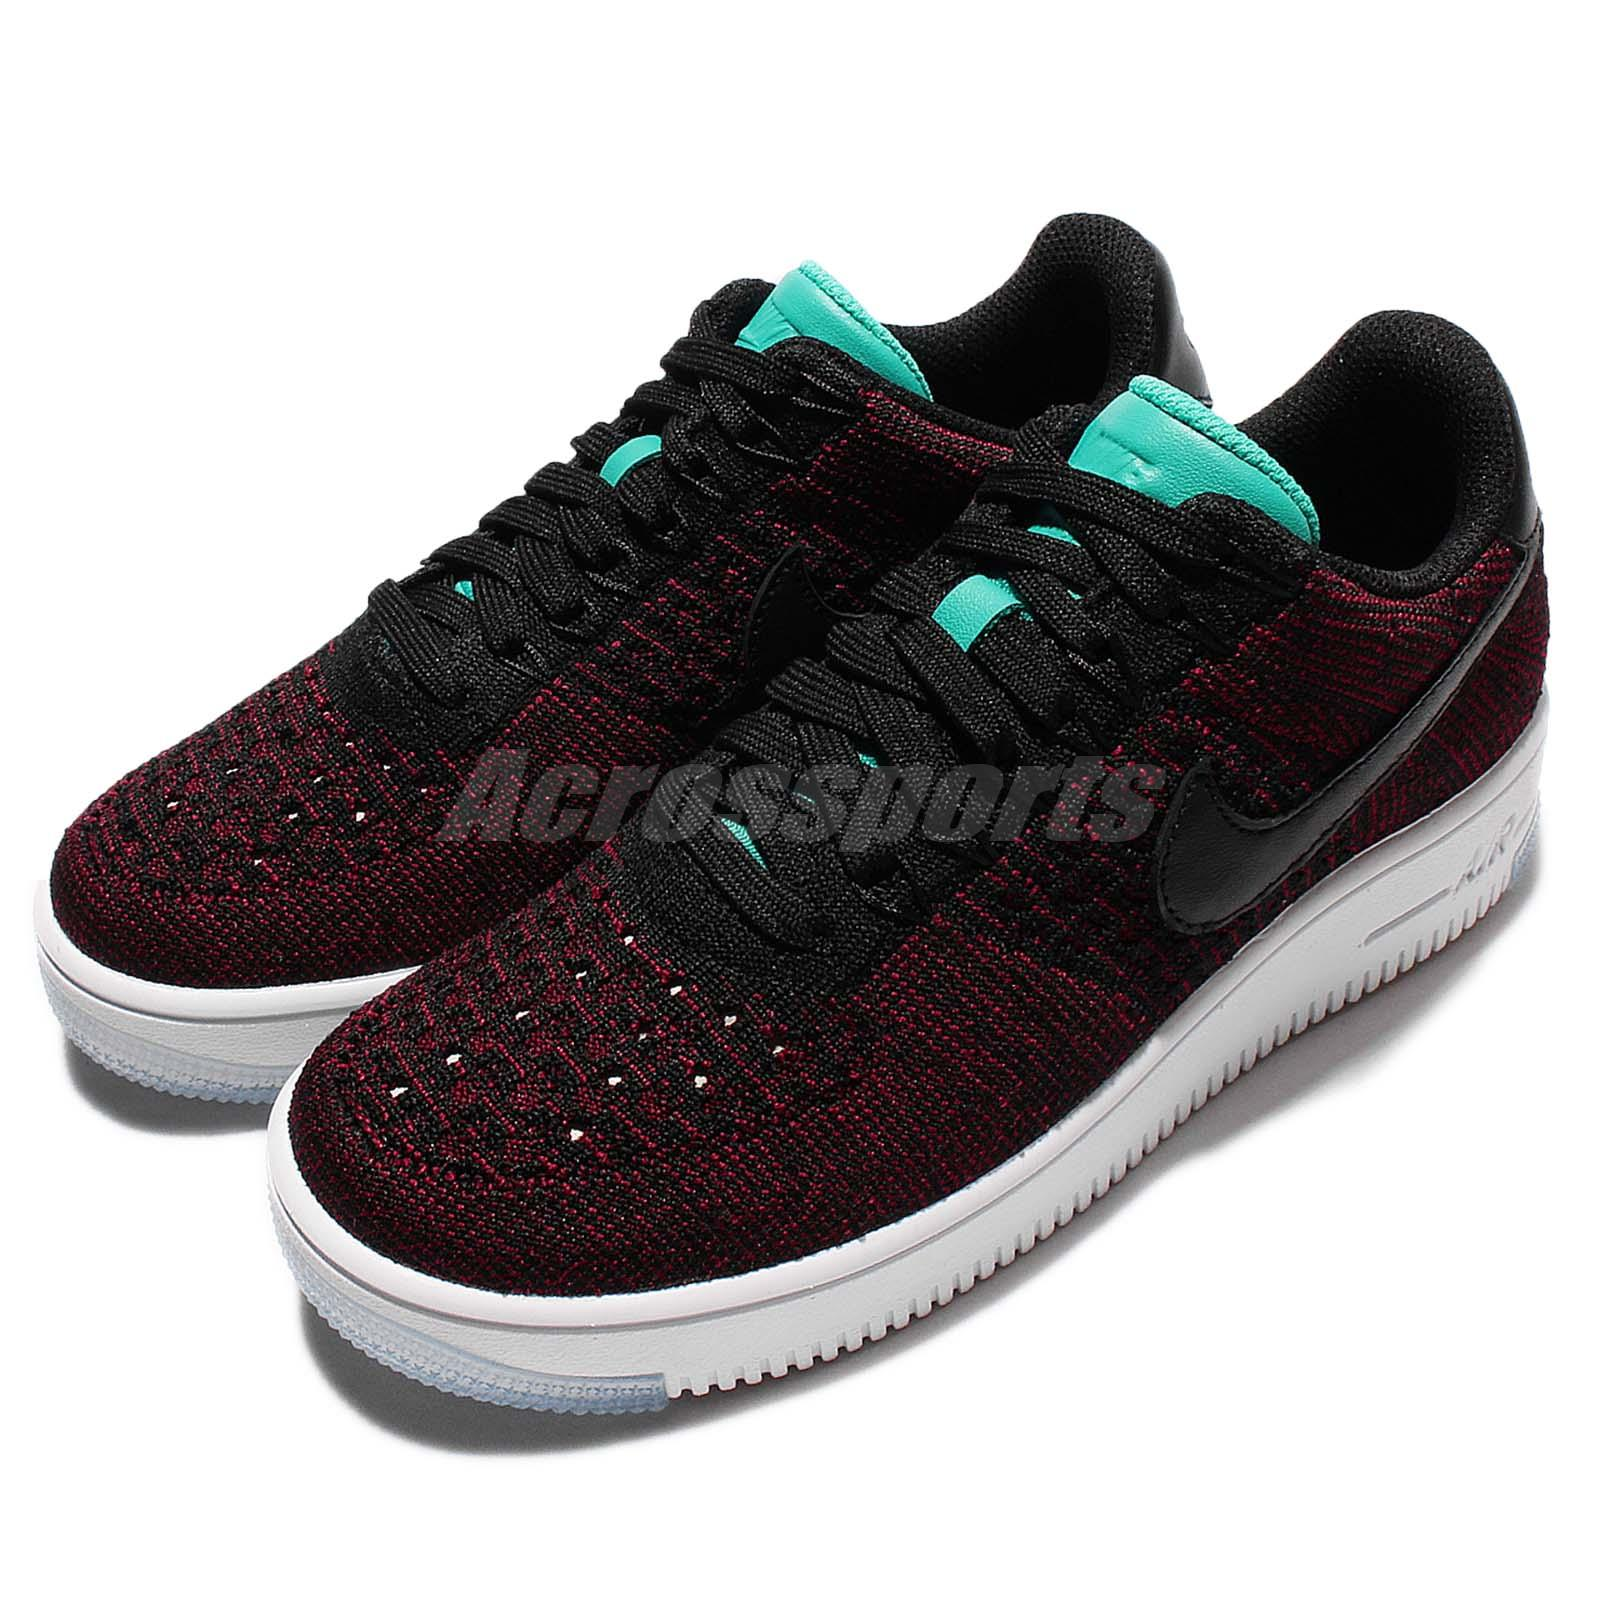 timeless design 46d5e 45c04 Details about Wmns Nike AF1 Flyknit Low Red Black Womens Air Force 1 Shoes  Sneakers 820256-002